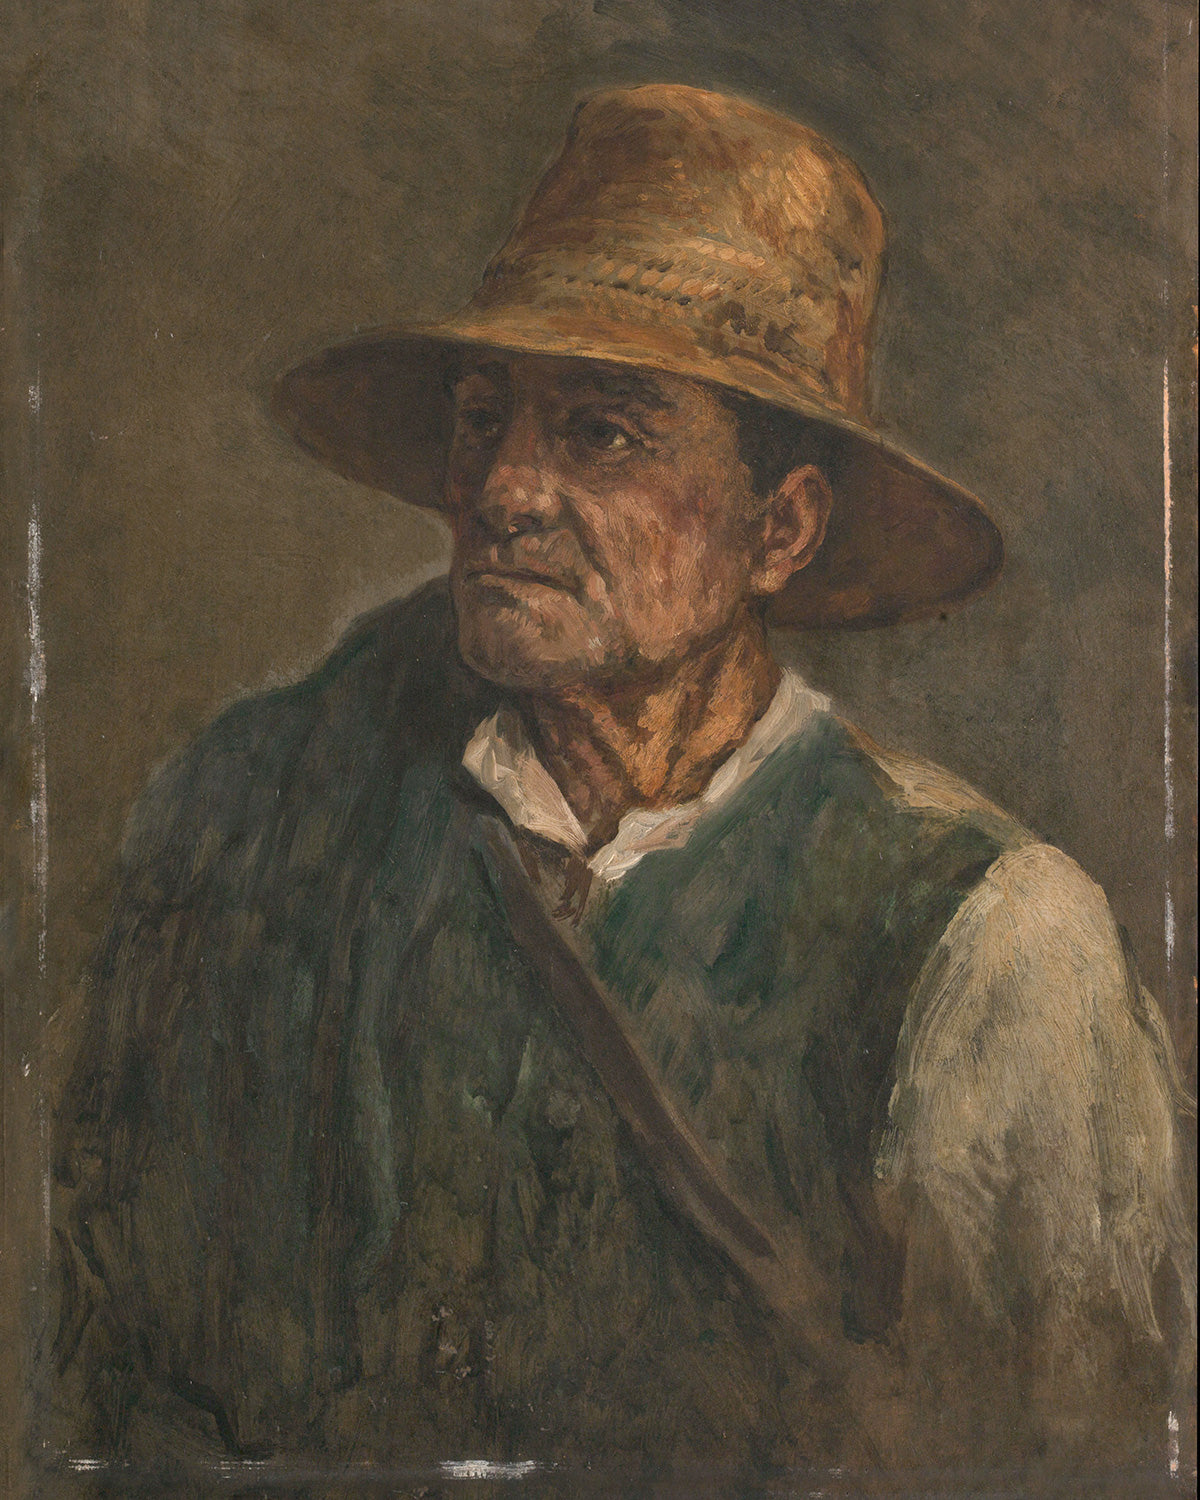 Man Wearing Straw Hat